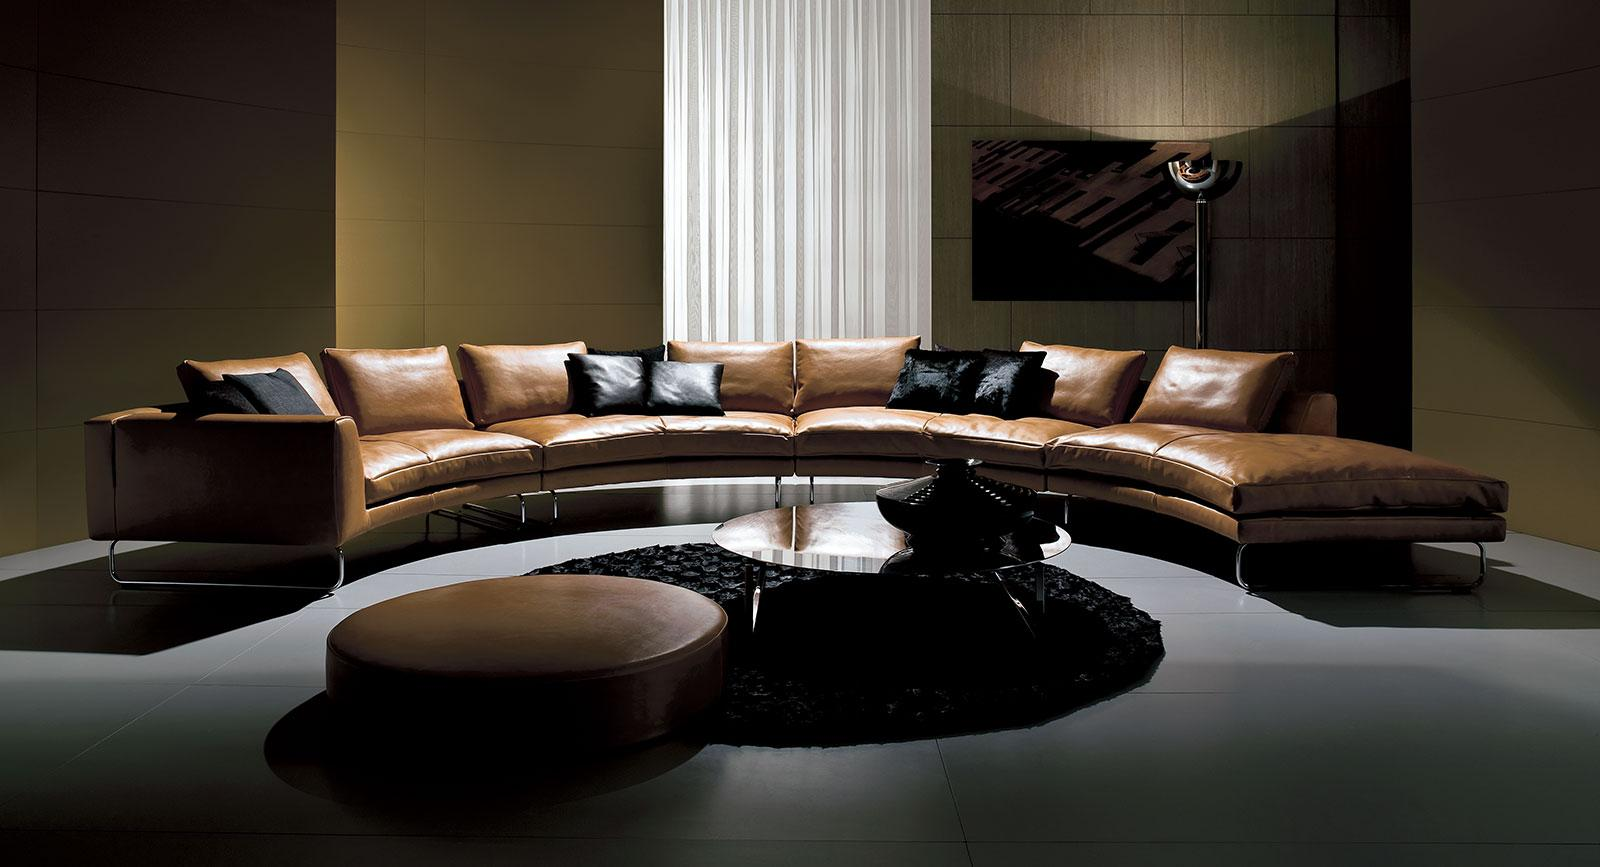 Sofa Leather Modular Delivery Online Couch Furniture Design Factor Home House Market